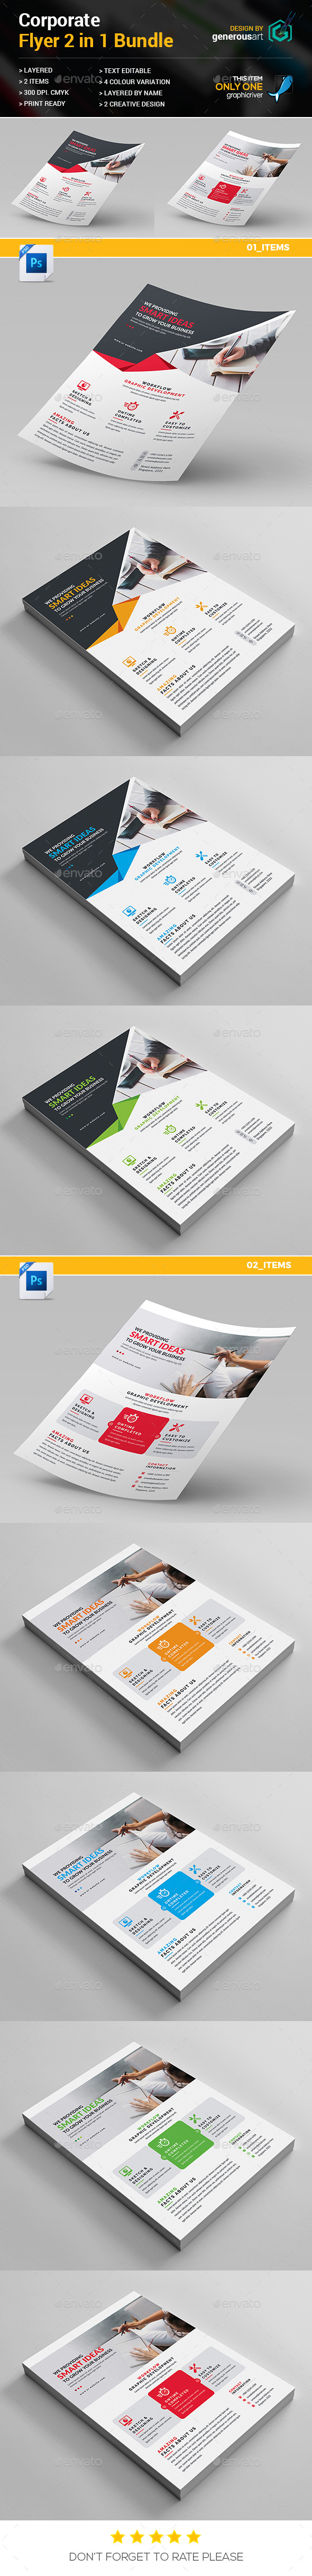 Flyers Bundle_2 in 1 - Flyers Print Templates